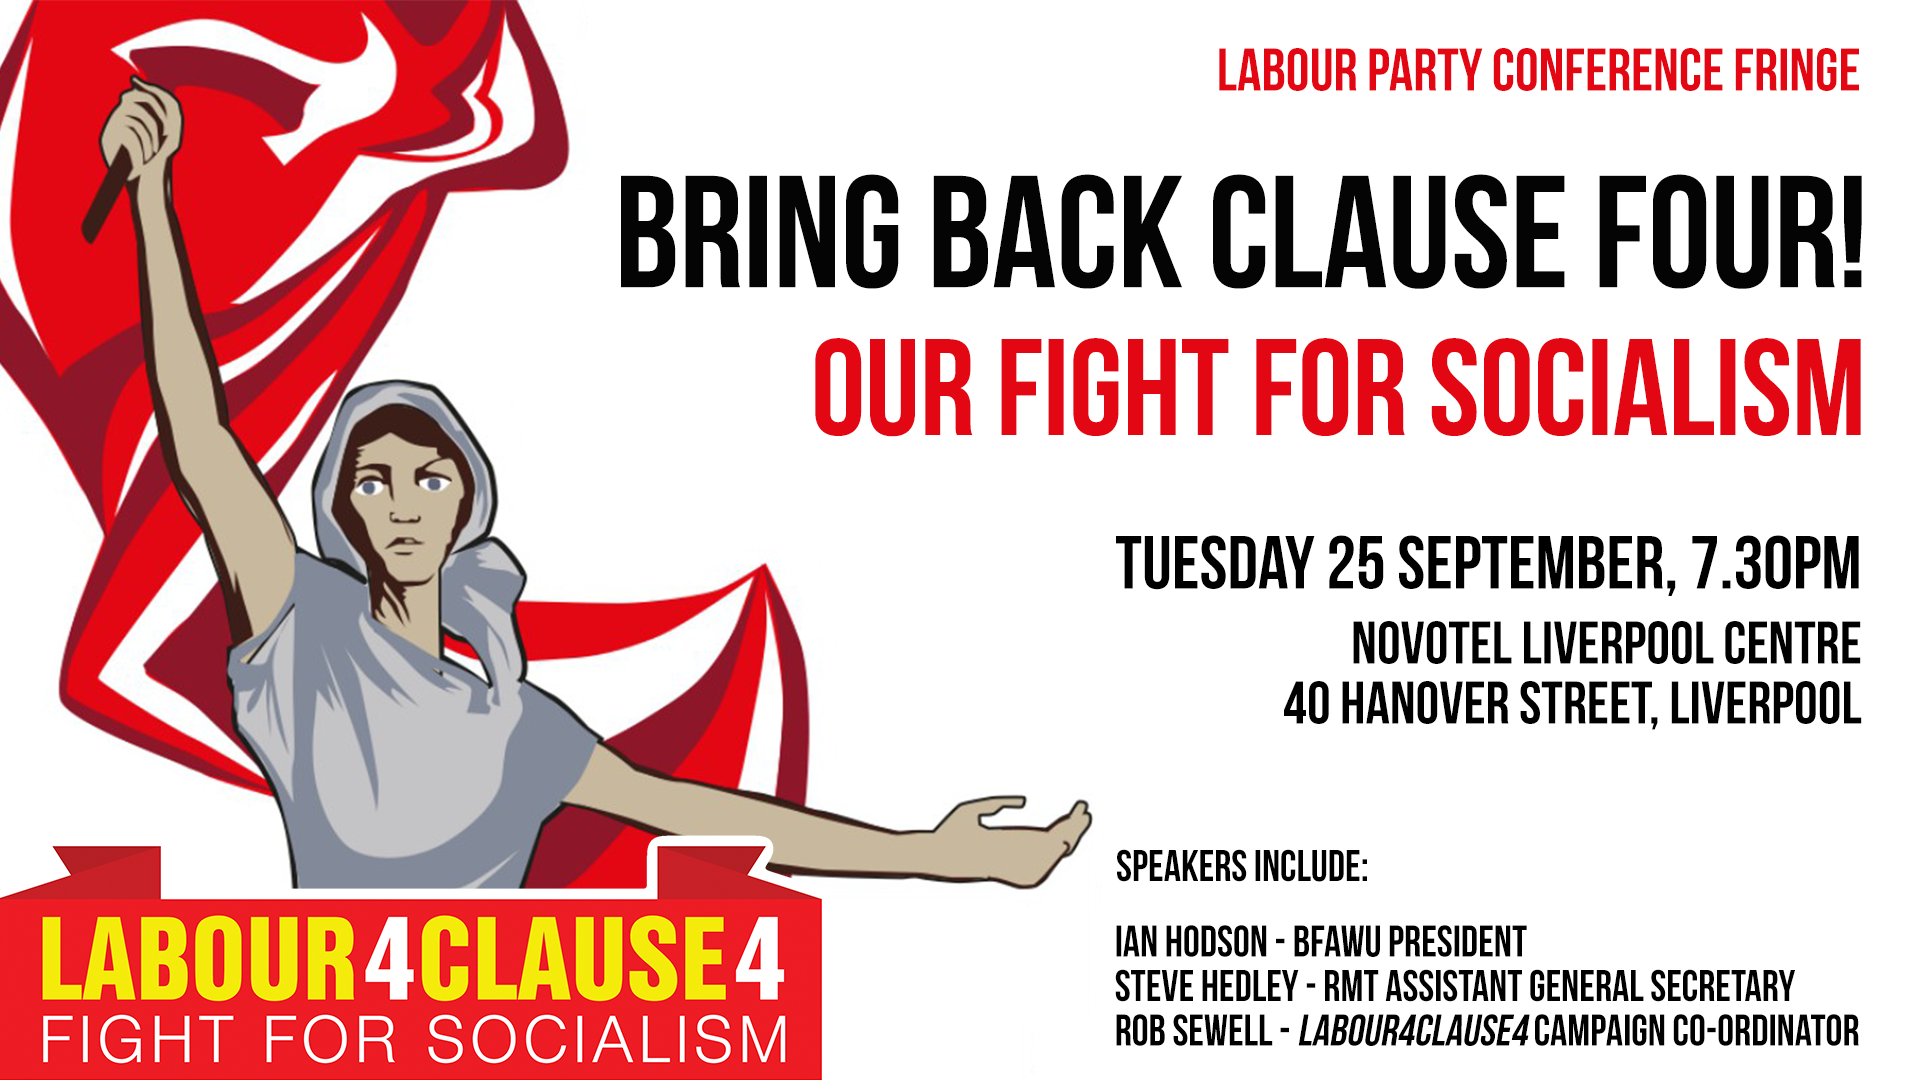 Labour4Clause4 LP conference fringe